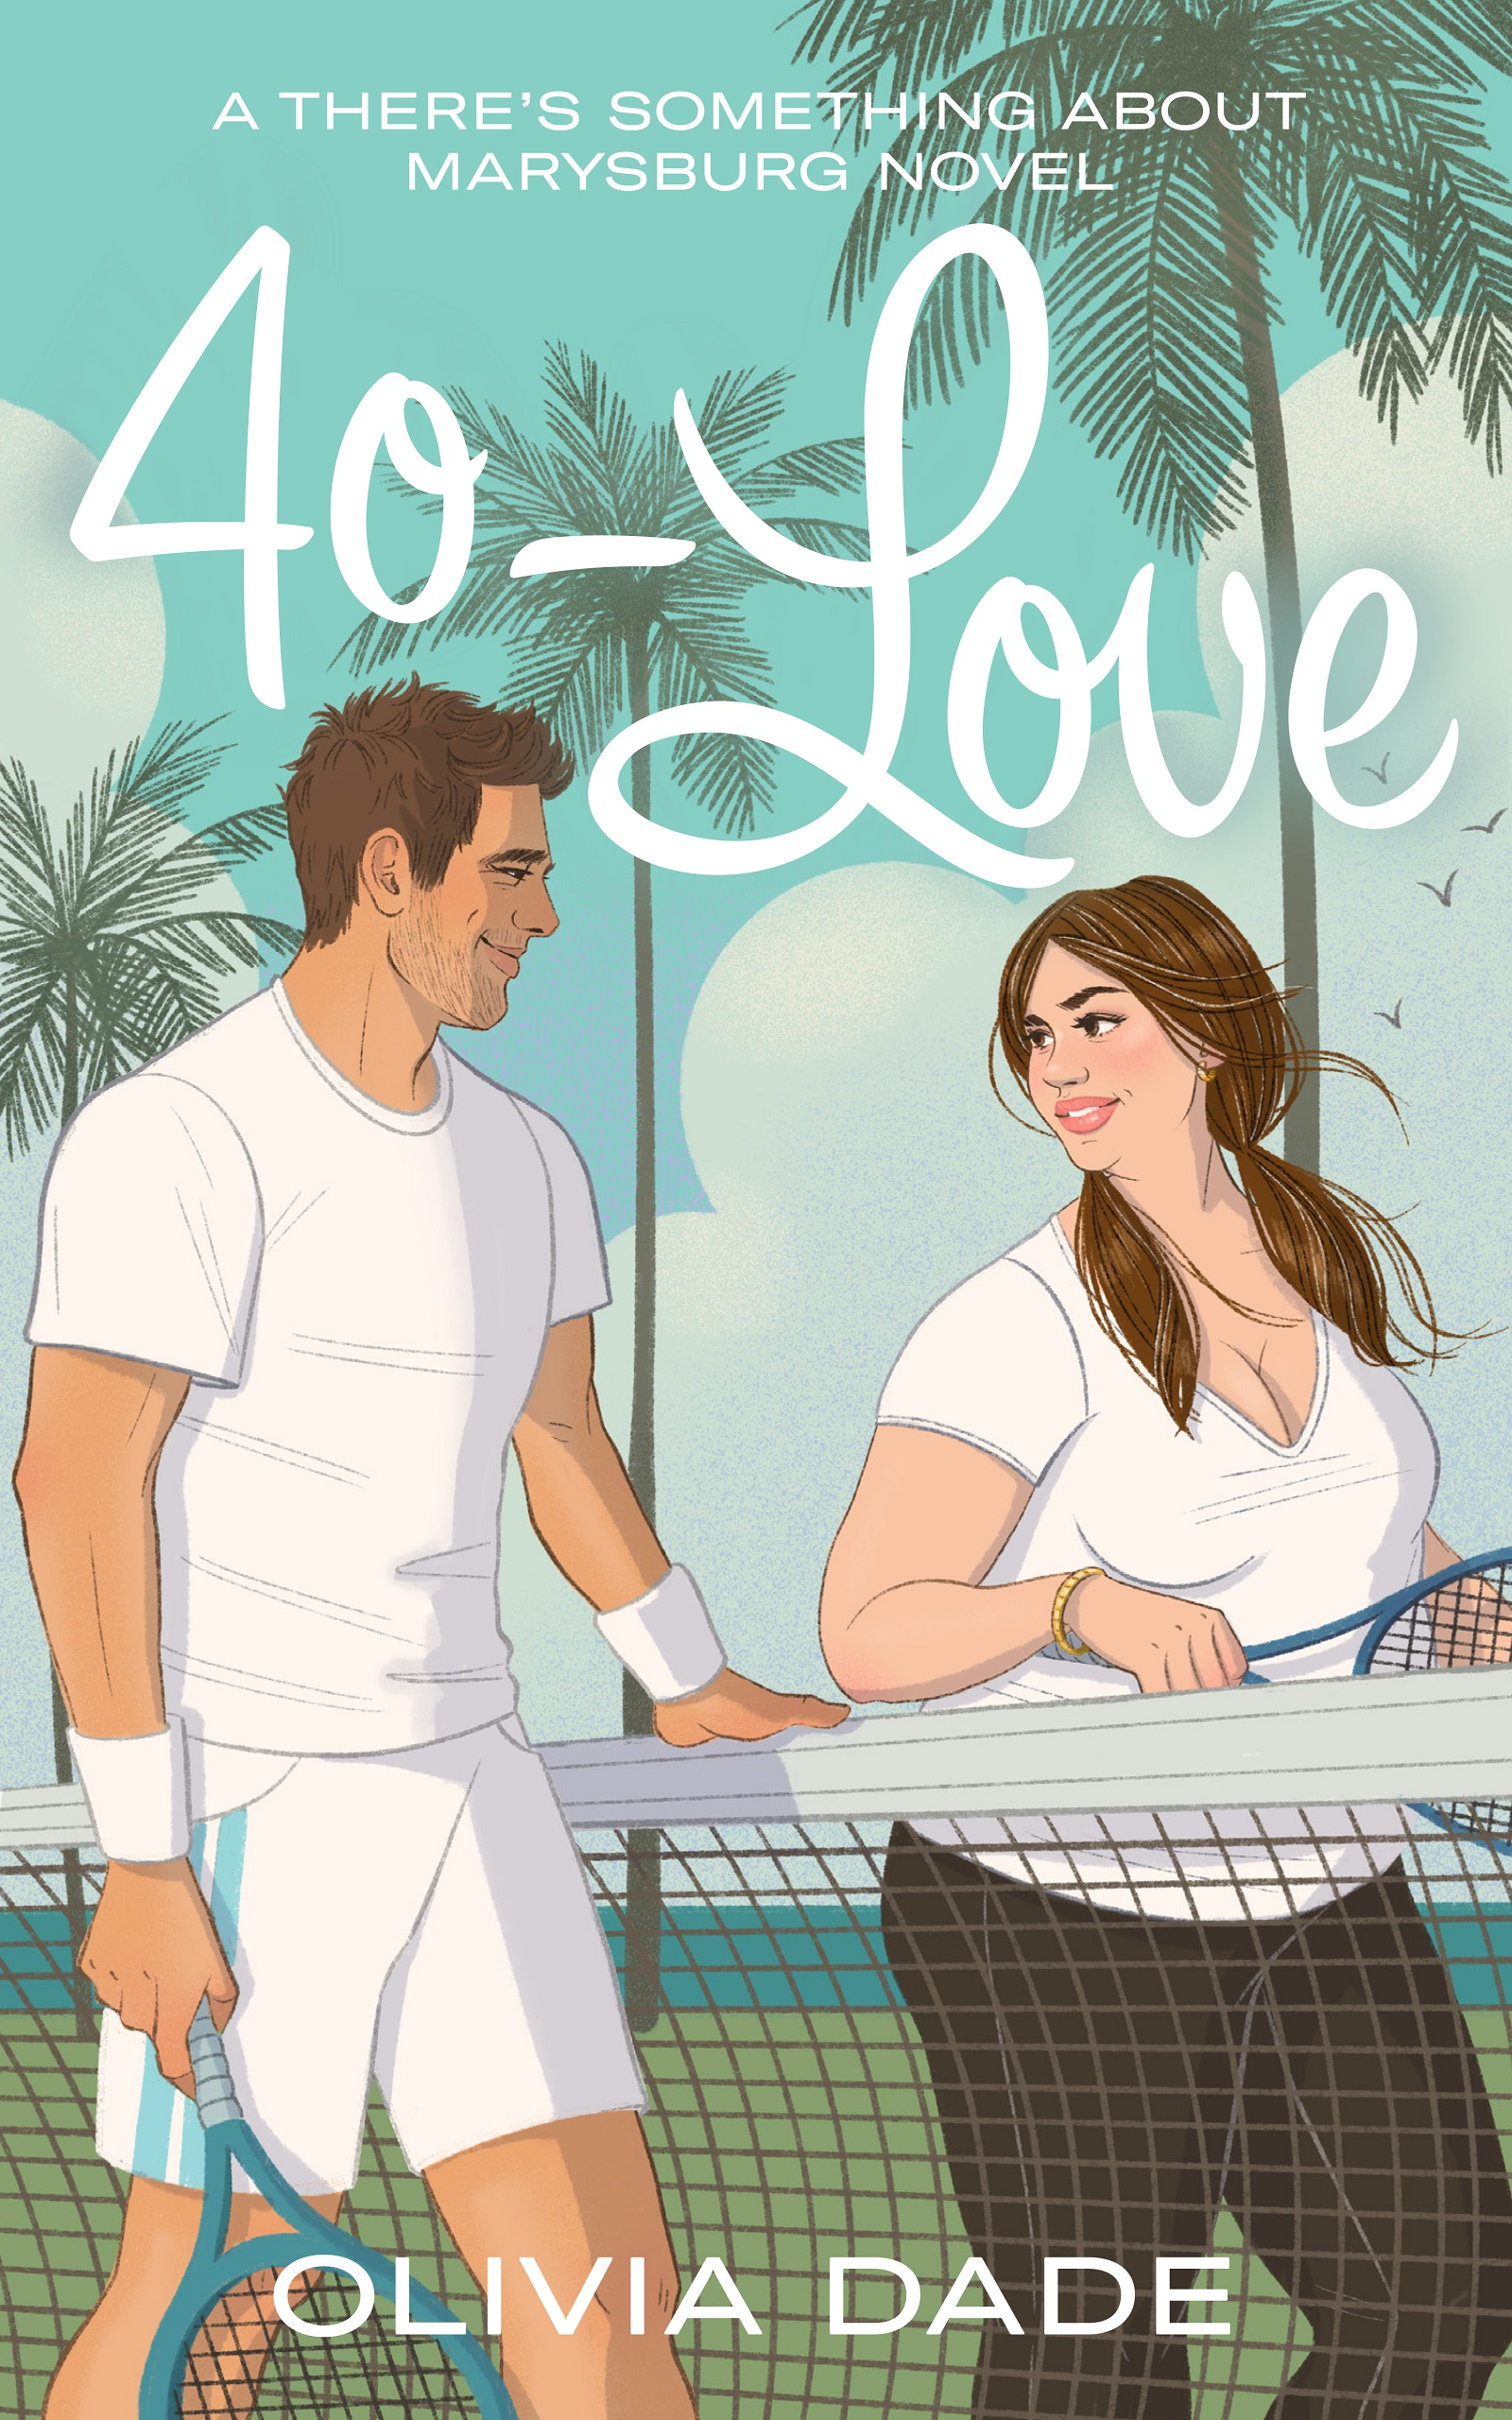 """Cover of 40-Love by Olivia Dade, with text reading """"A THERE'S SOMETHING ABOUT  MARYSBURG NOVEL."""" It shows a pretty fat woman with silver streaks in her hair standing across a tennis net from a handsome man in tennis whites, with both smiling at one another, and palm trees and water in the background."""